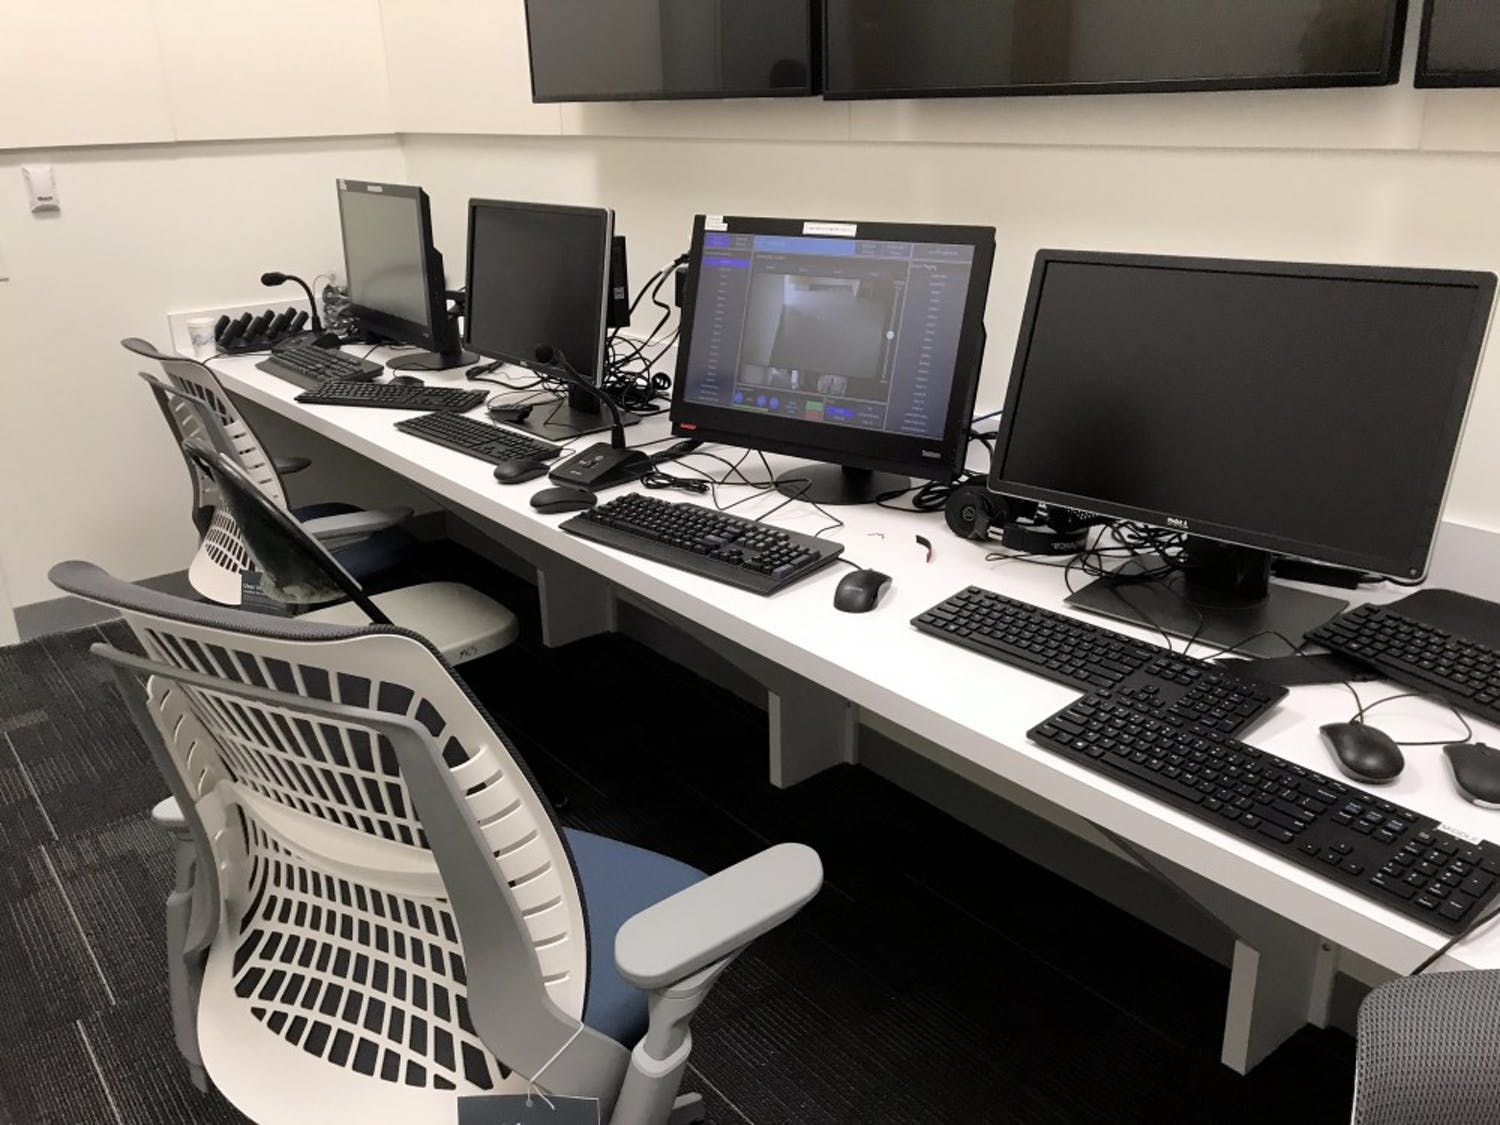 This control room has the capacity to digitally monitor and record the medical students working in exam and simulation rooms throughout the building.